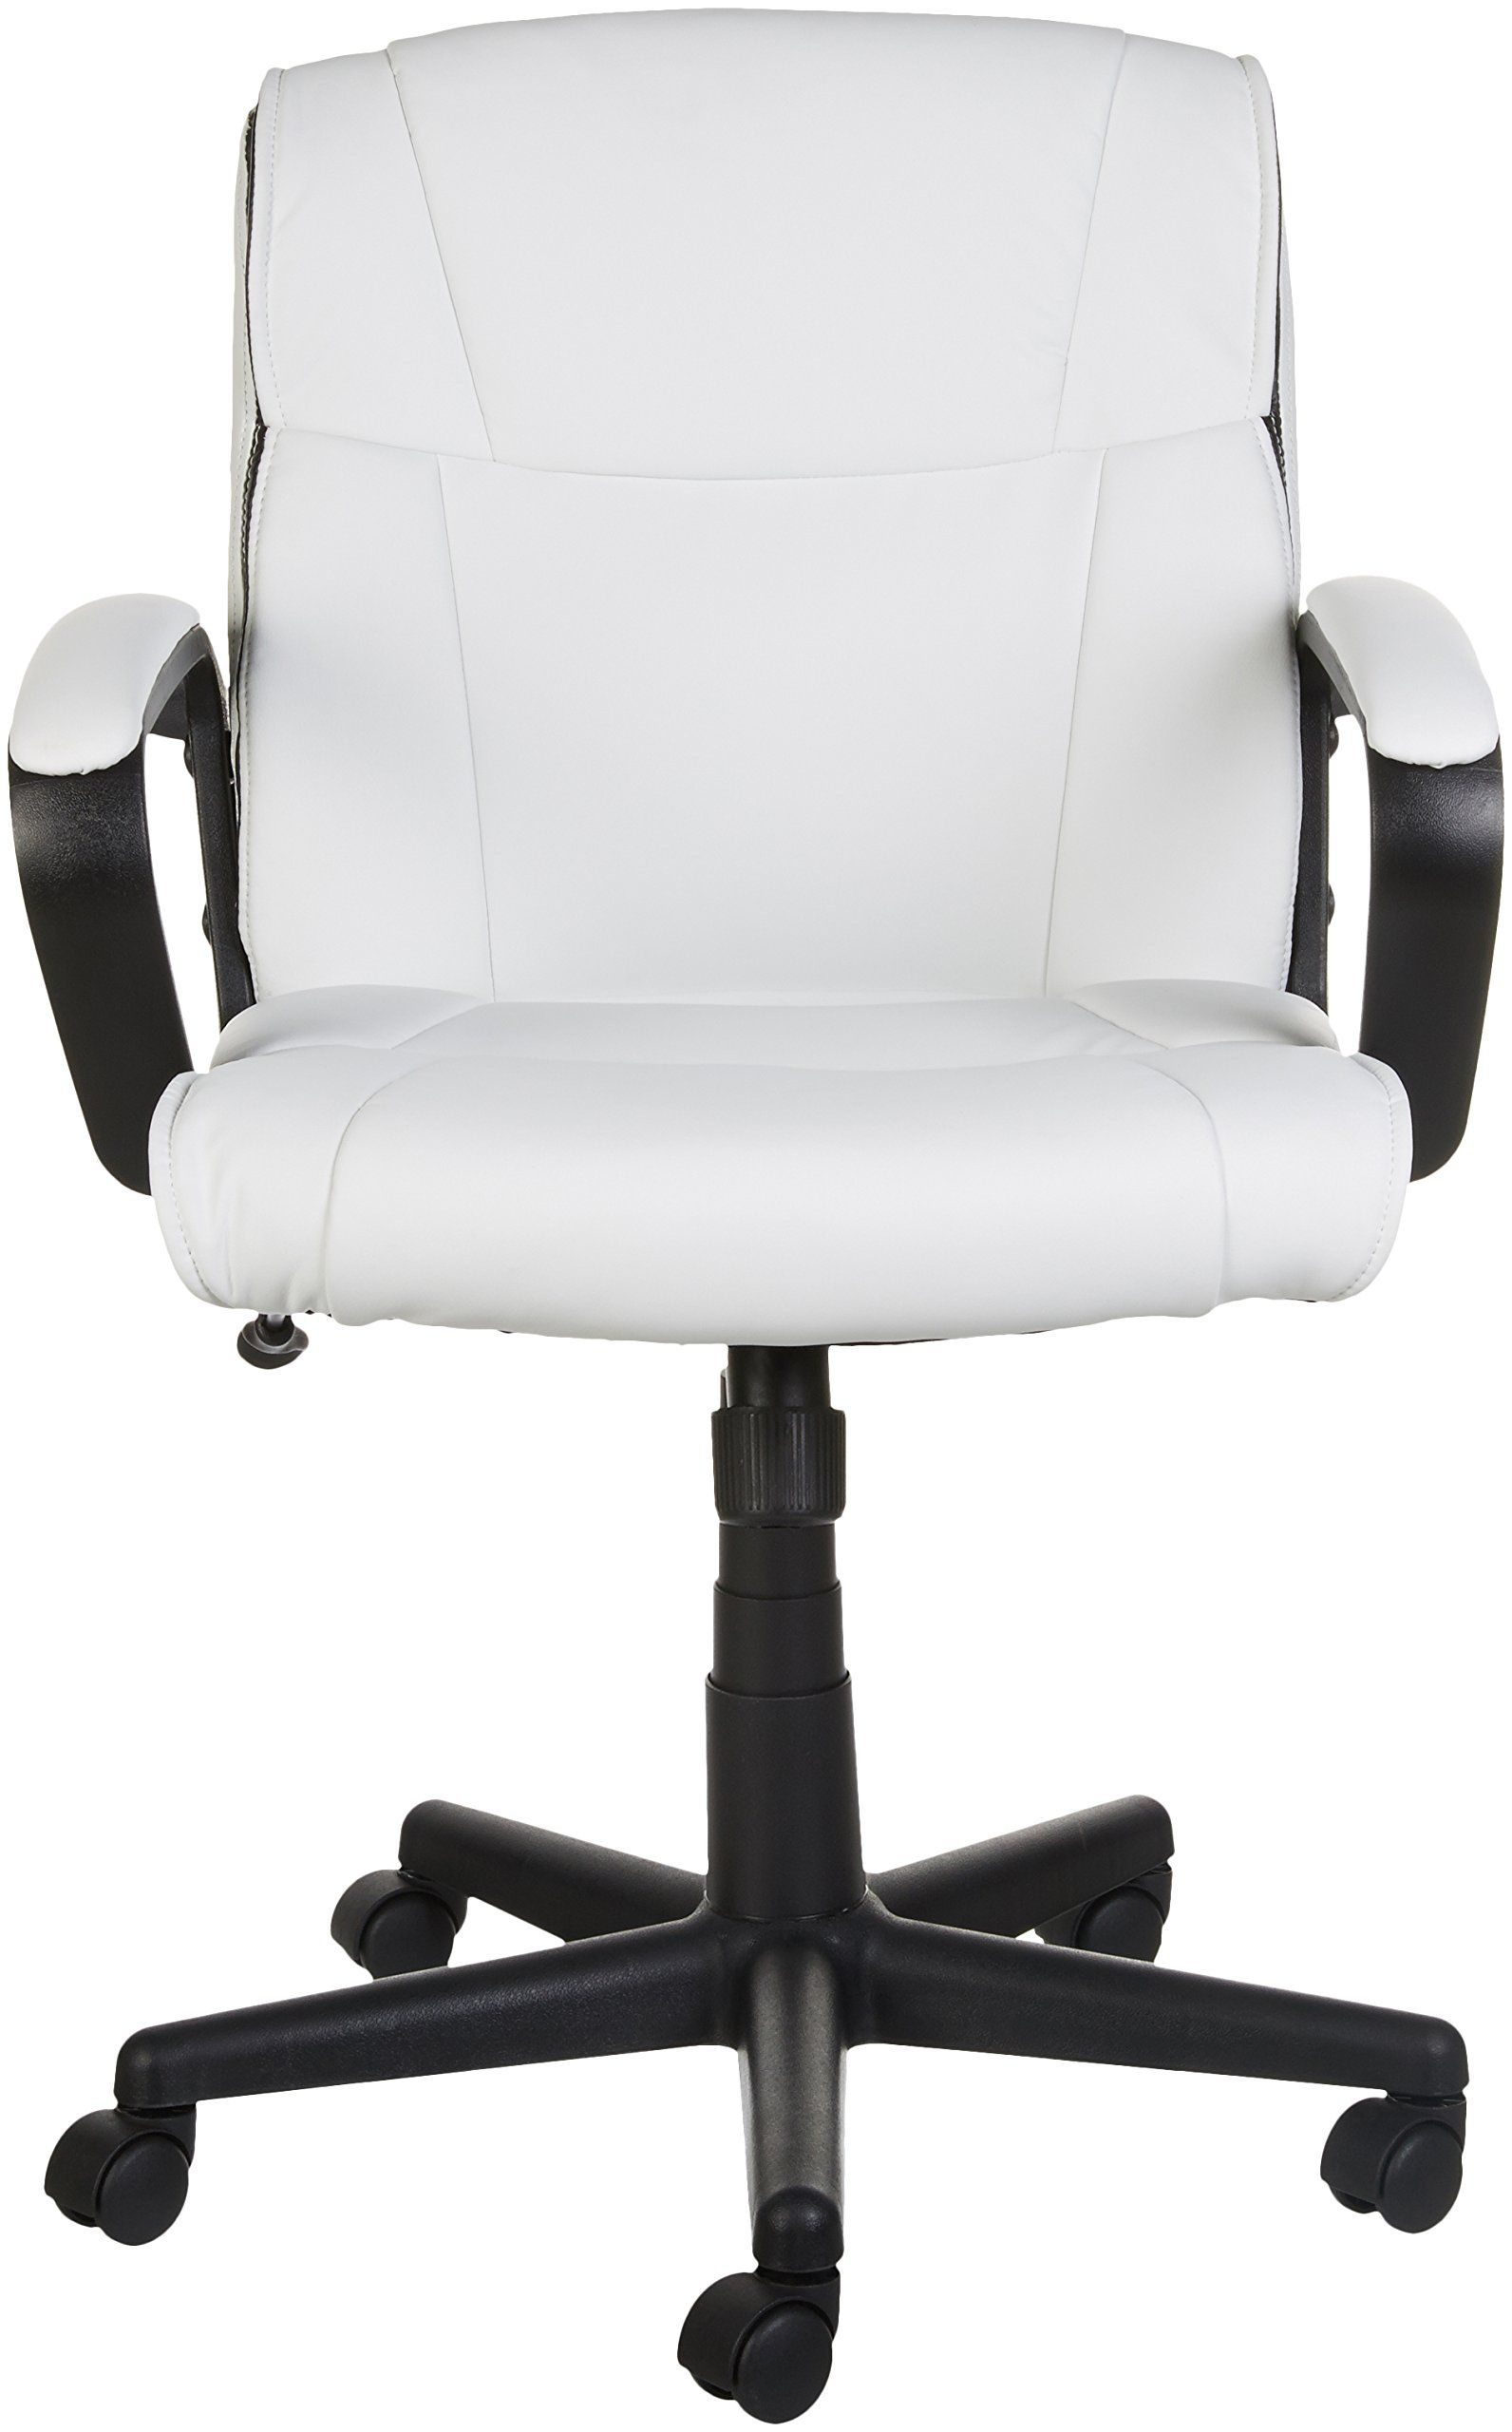 AmazonBasics MidBack Office Chair White >>> Details can be